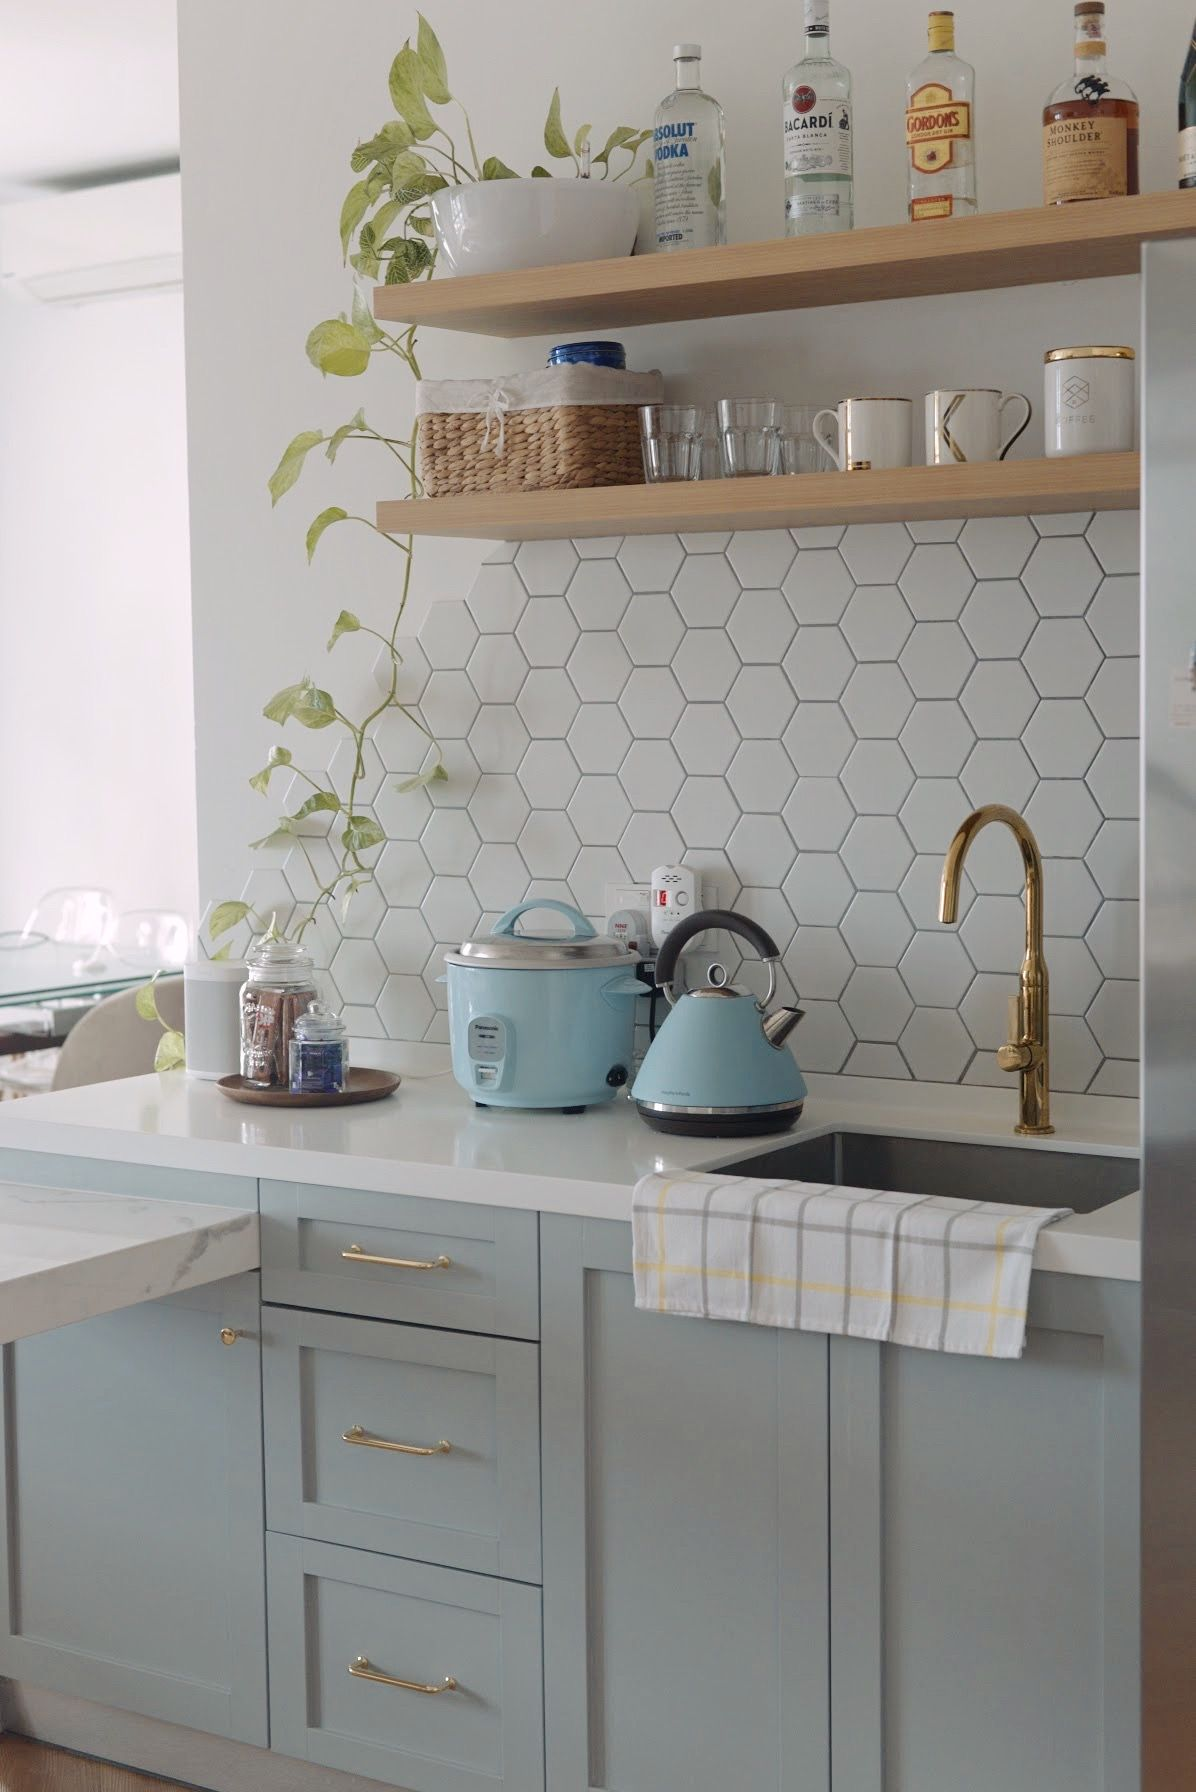 5 Classic Kitchen Backsplash Ideas To Try Right Now